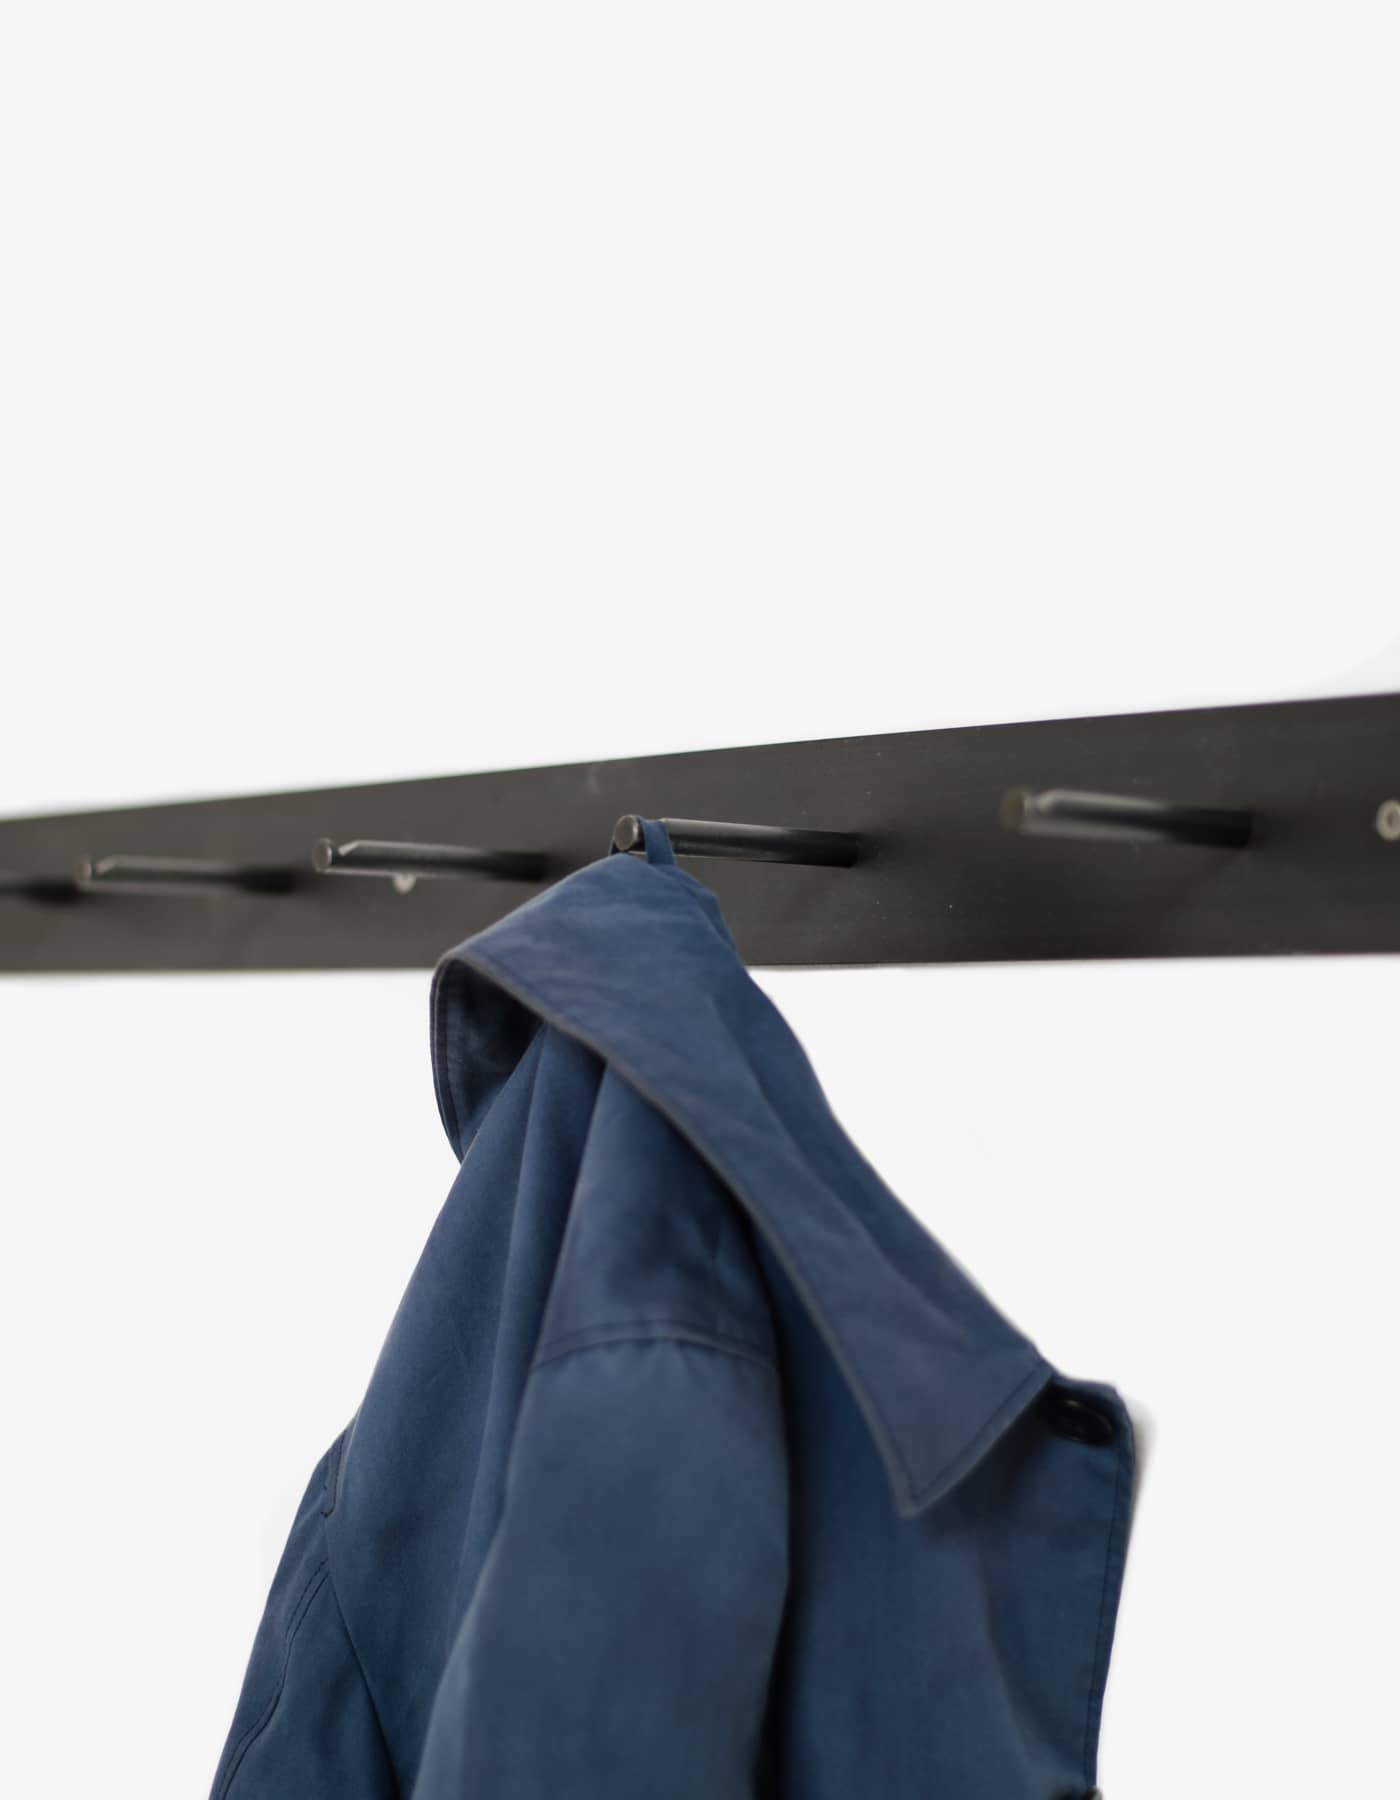 Hellogoodbye coat rack is made of a flat piece of crude steel plus six round hooks with notches to prevent clothes or coat hangers from sliding off.